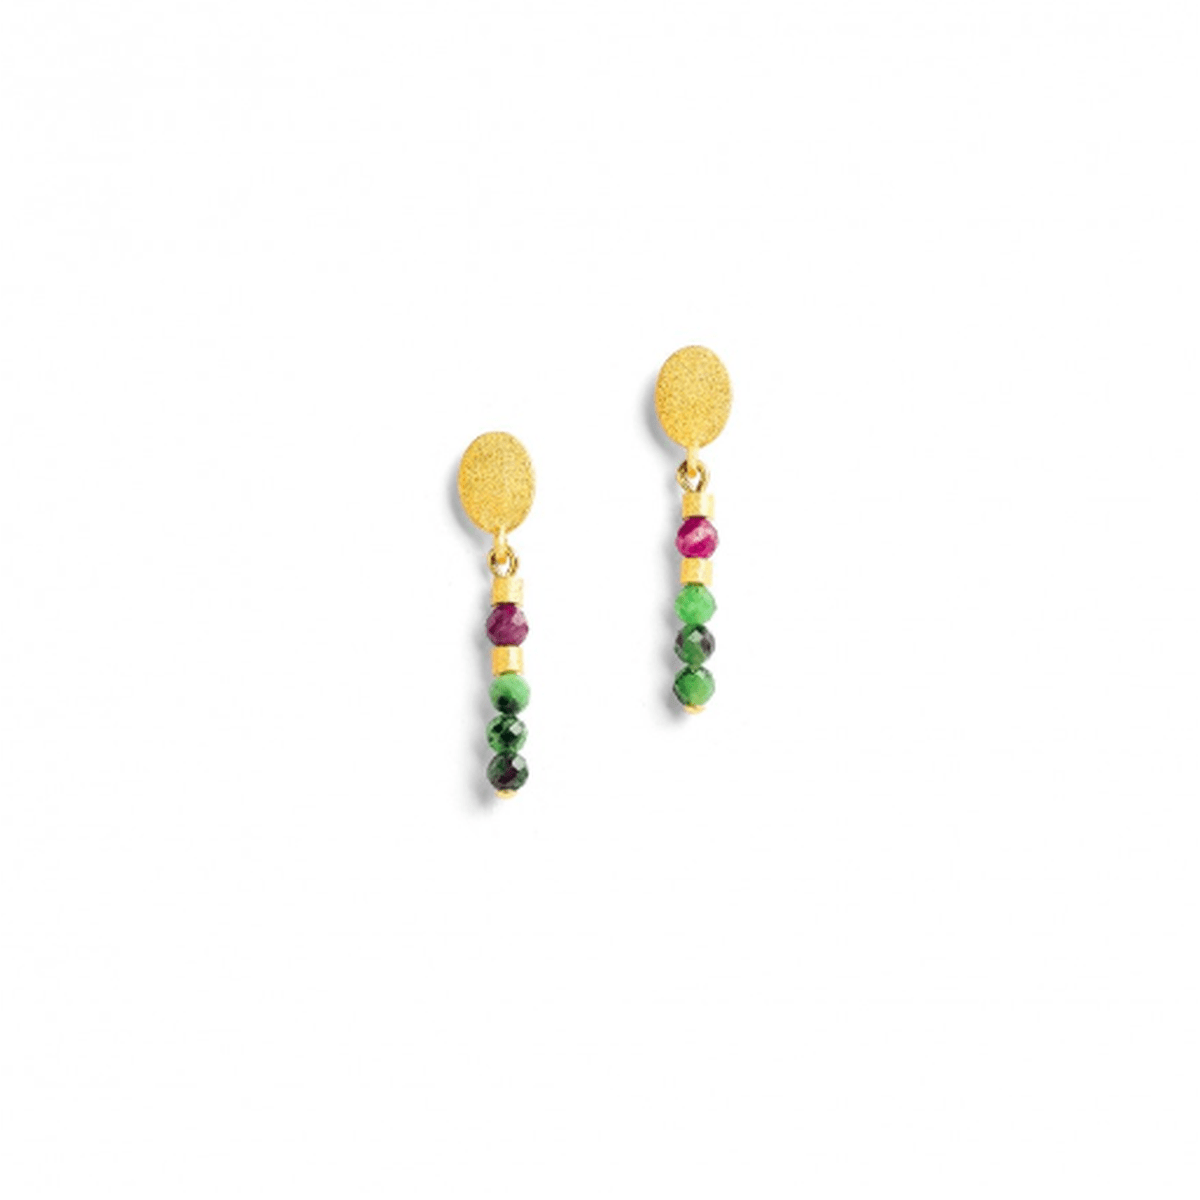 Steira Ruby-Zoisite Earrings - 15509086-Bernd Wolf-Renee Taylor Gallery